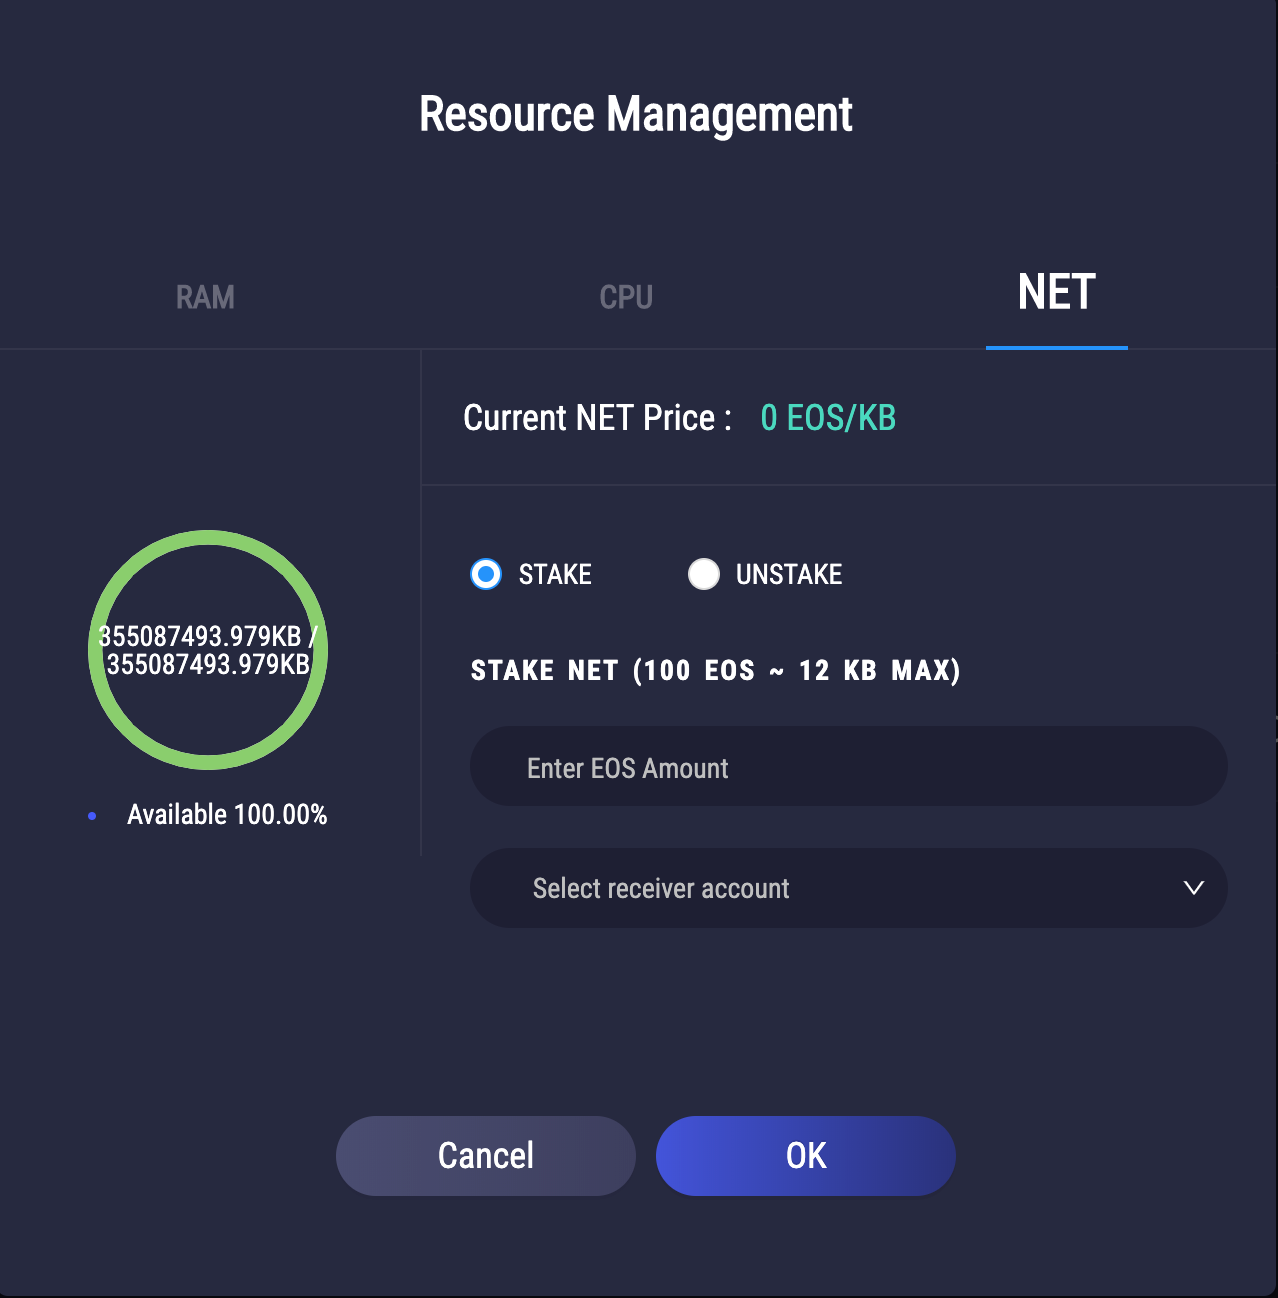 Resource Management Page